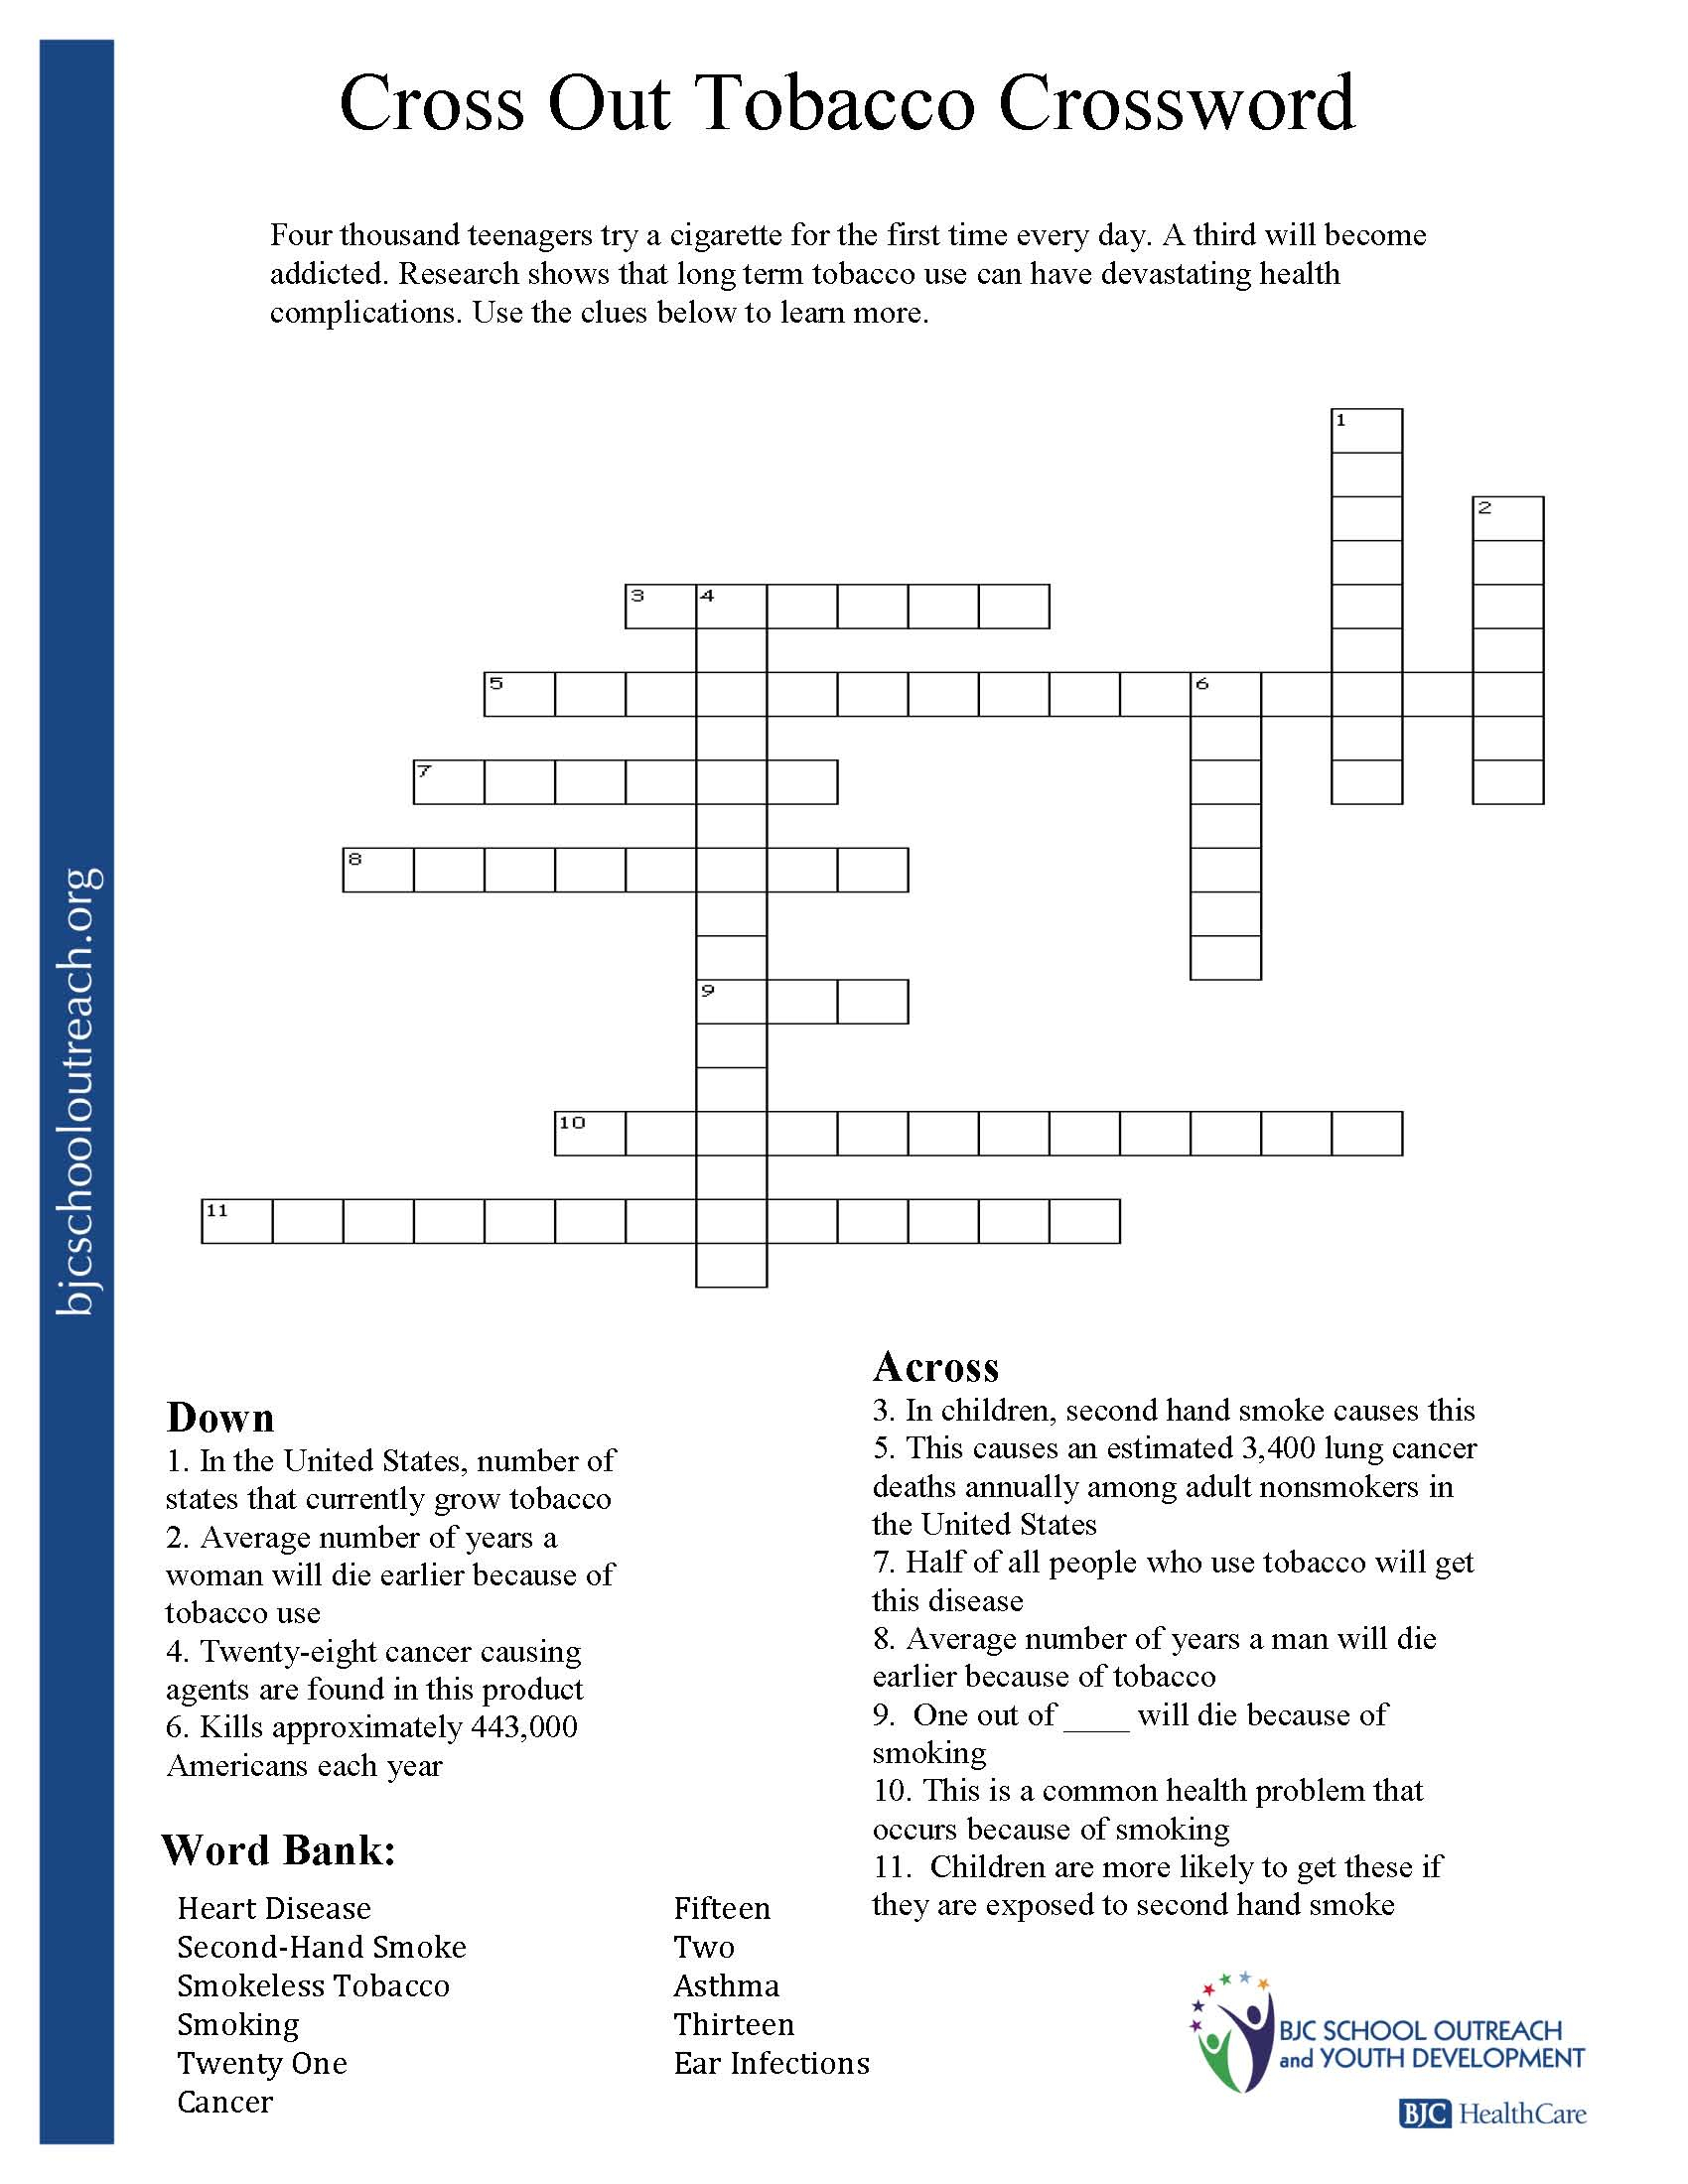 Printable Worksheets - Printable Crossword Puzzle With Word Bank